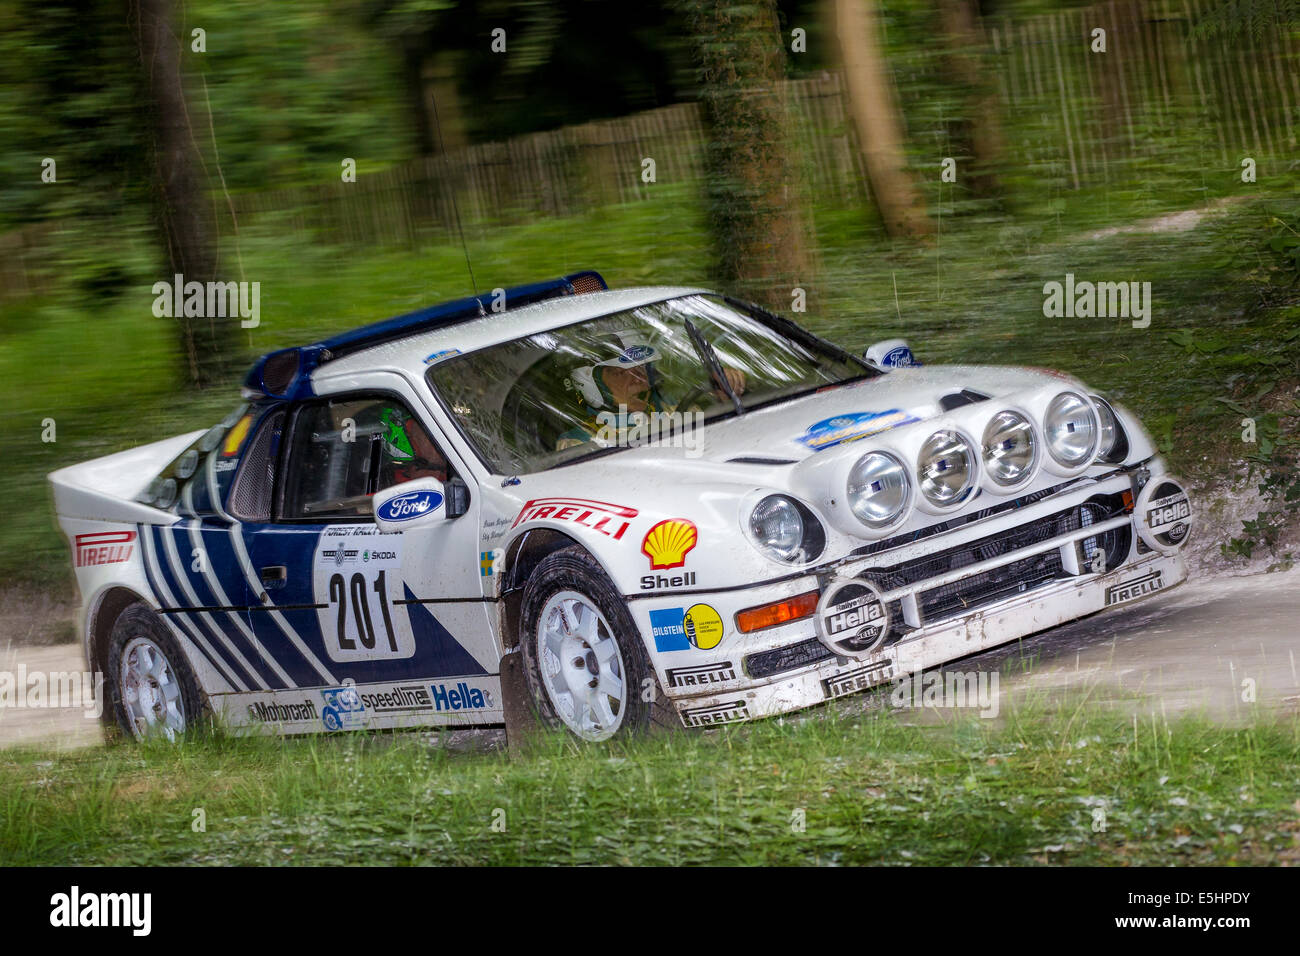 1986 ford rs200 evo group b rally car with driver james avis 2014 stock photo 72305575 alamy. Black Bedroom Furniture Sets. Home Design Ideas